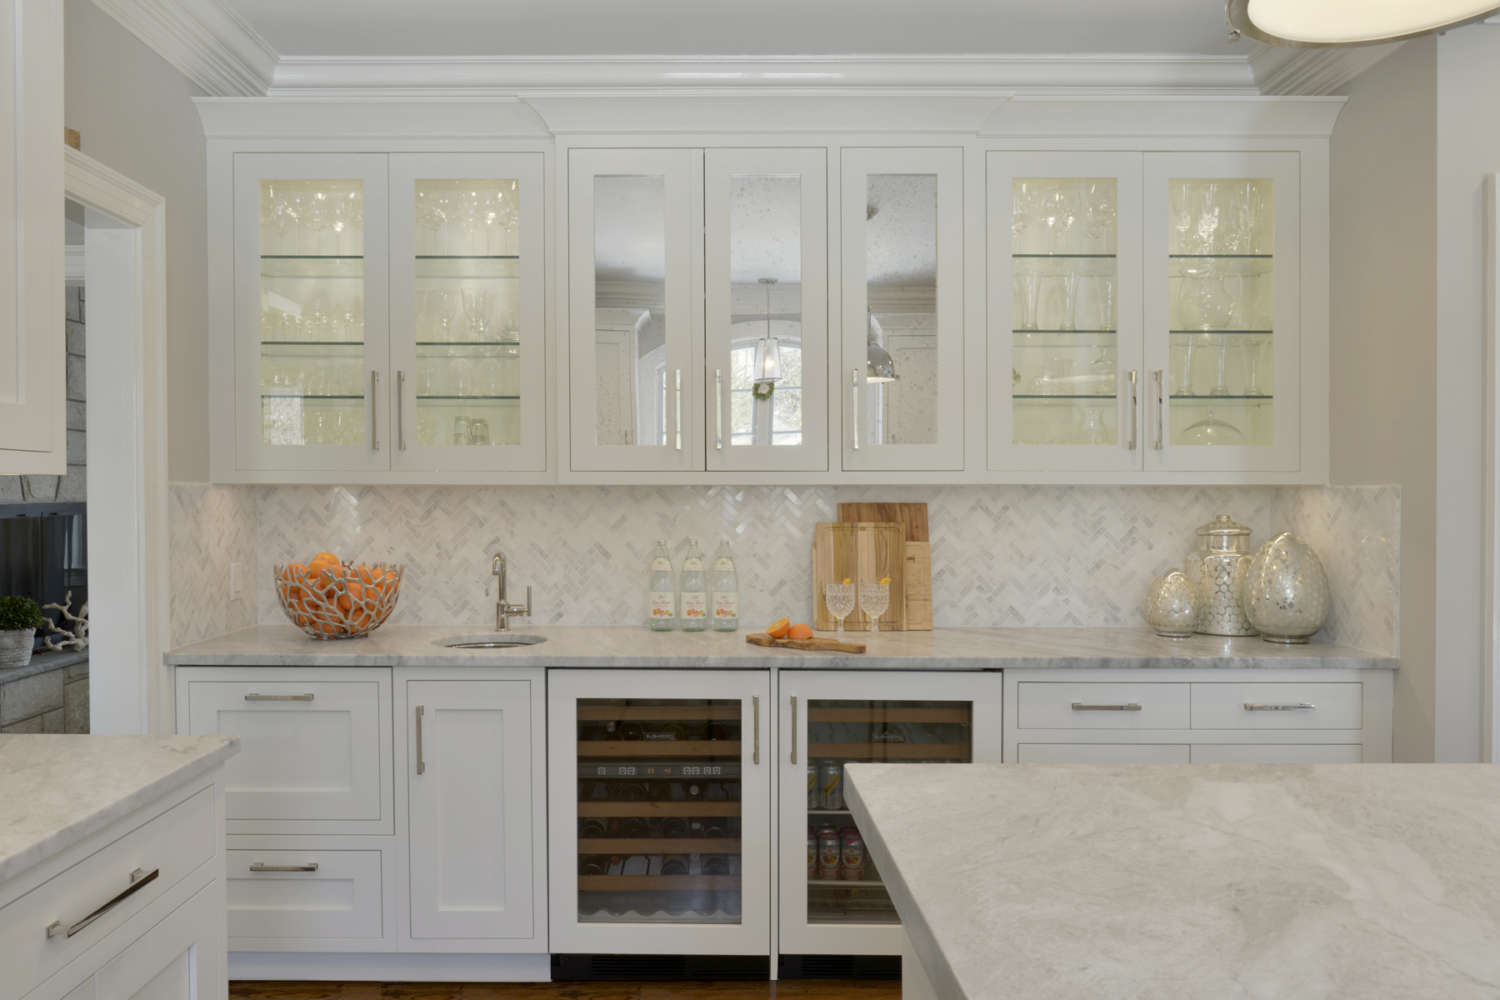 Wet bar with white and pale gray herringbone pattern backsplash and marble counter. White painted Bilotta cabinets with shaker style cabinet doors mixed with glass front cabinets with antique mirrored inserts. Designed by Linda Daniele of Bilotta Kitchens.